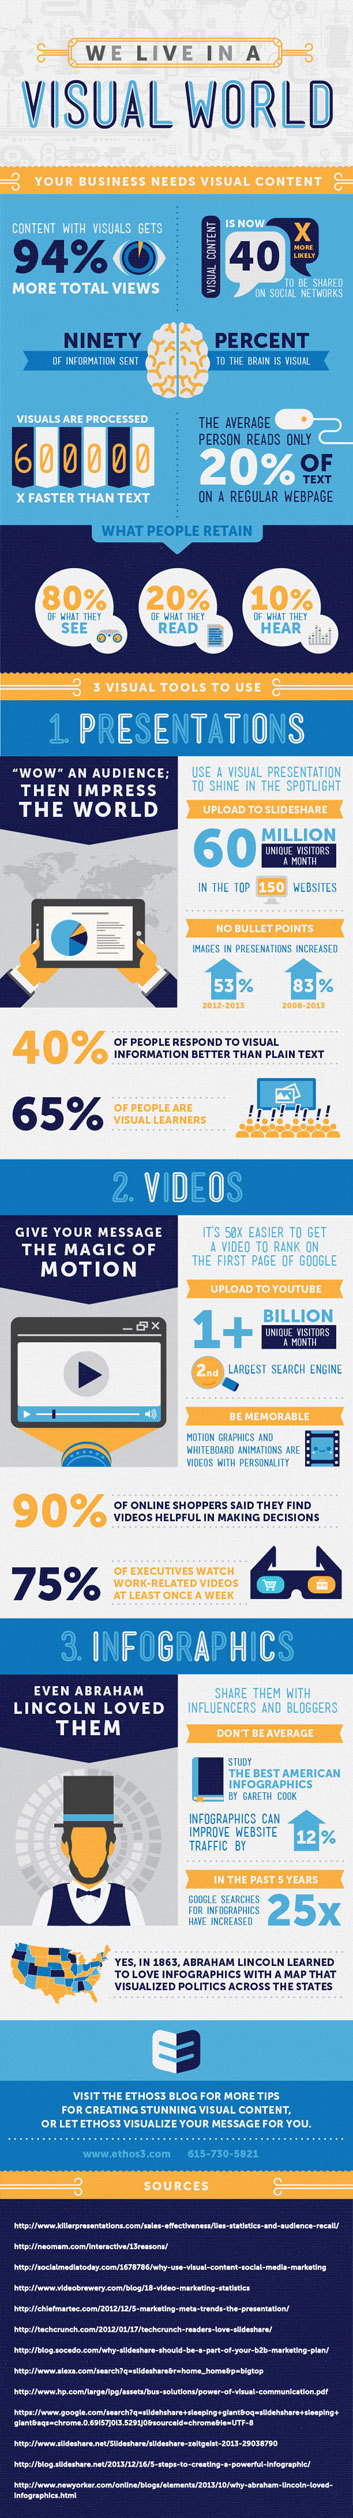 Why We're More Likely To Remember Content With Images And Video (Infographic) | MarketingHits | Scoop.it